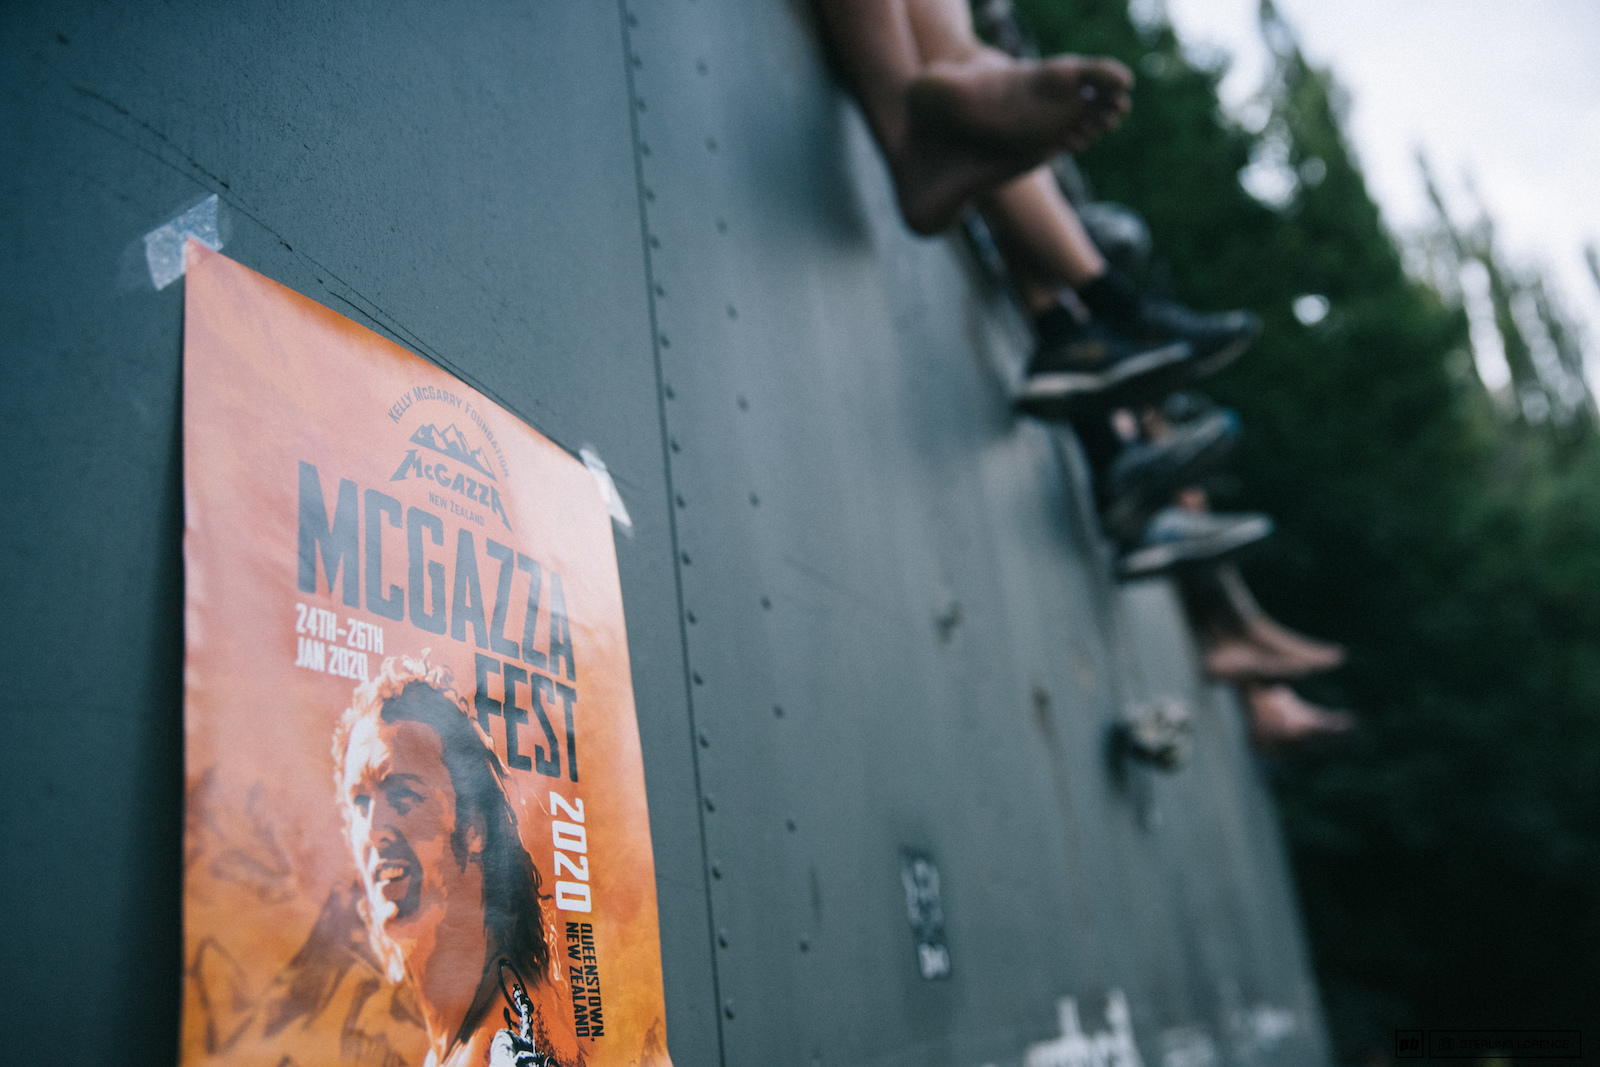 Celebrating Kelly McGarry at McGazza Fest 2020 in Queenstown New Zealand